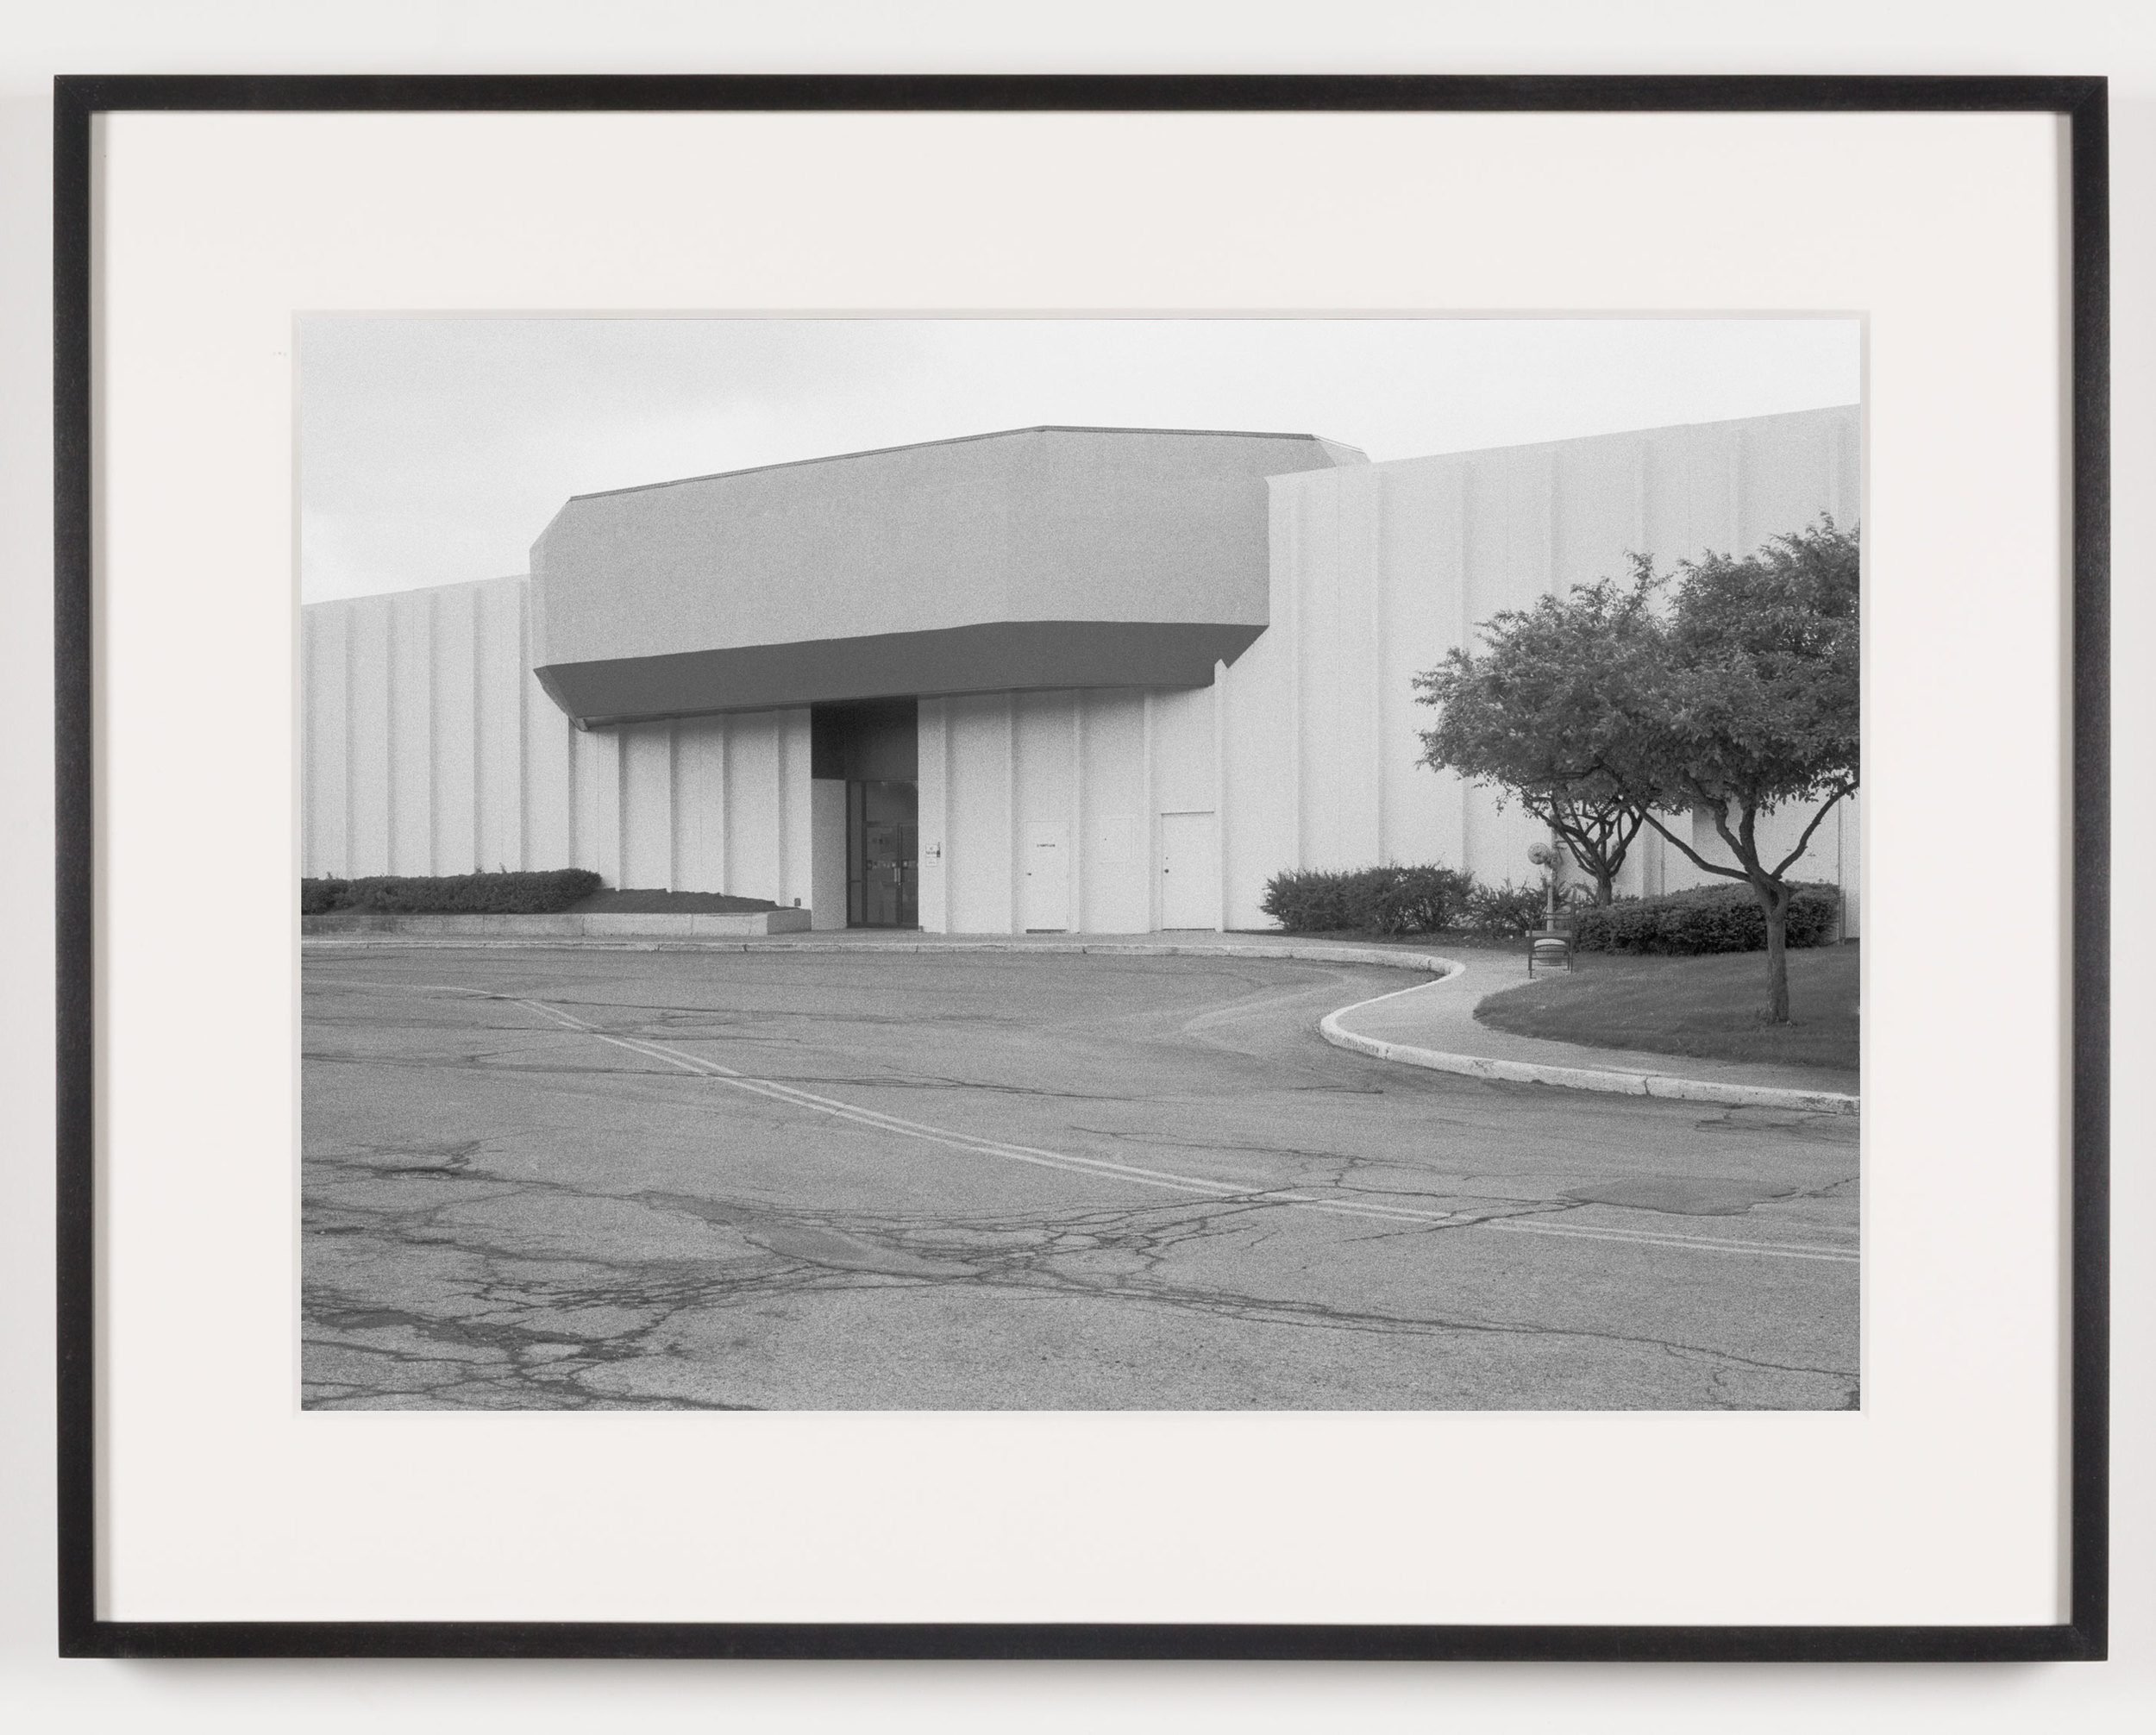 Midway Mall (View of Exterior, 'Sears'), Elyria, OH, Est. 1965    2011   Epson Ultrachrome K3 archival ink jet print on Hahnemühle Photo Rag paper  21 5/8 x 28 1/8 inches   American Passages, 2001–2011